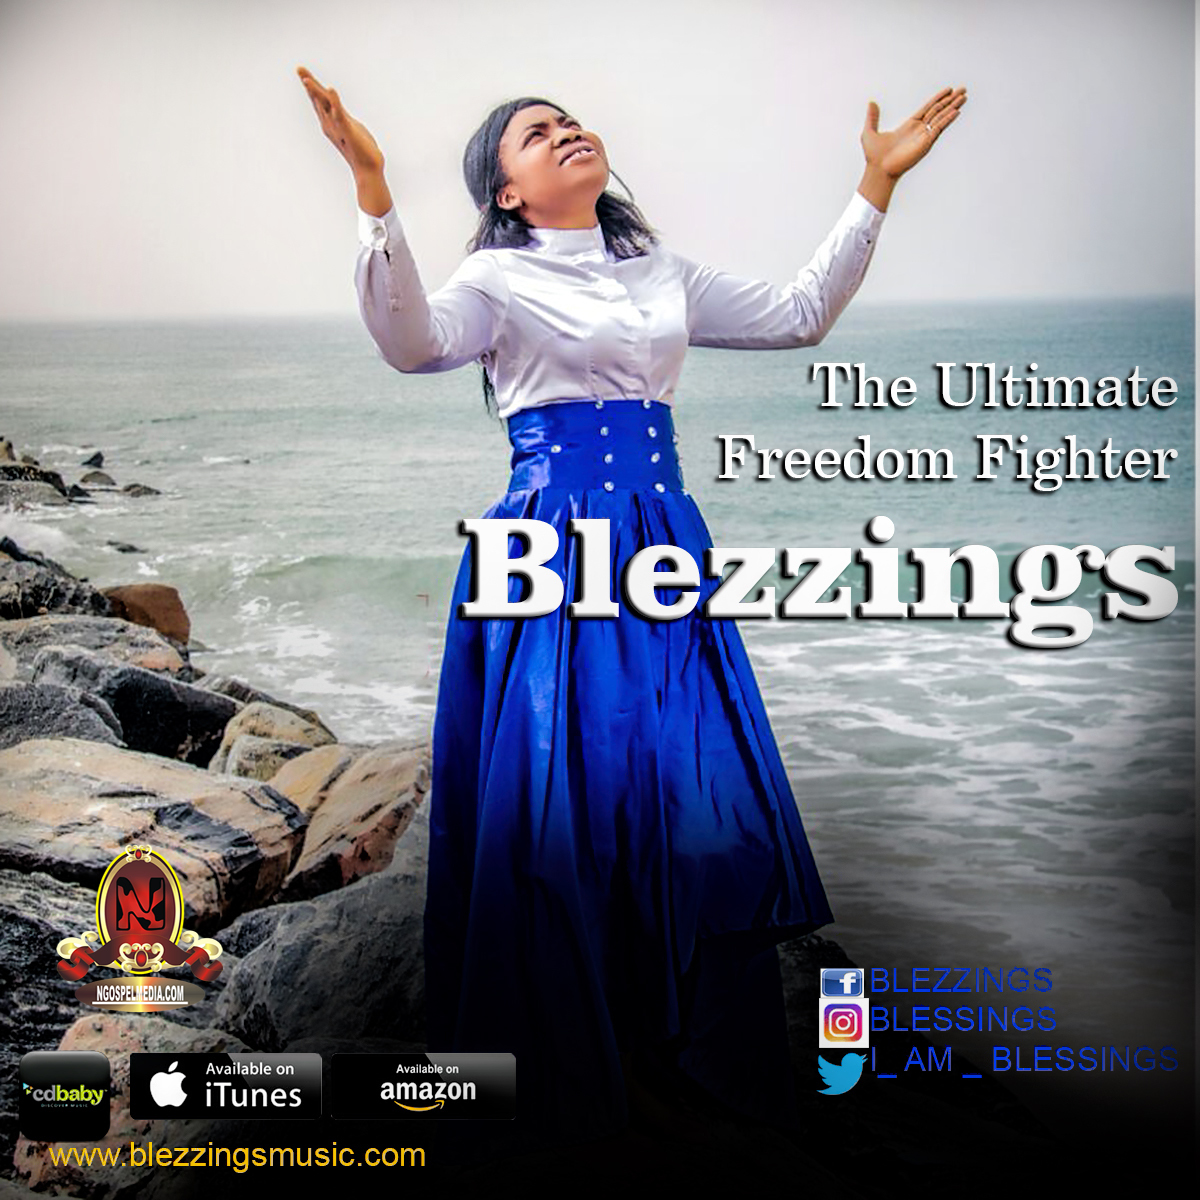 blezzings - ultimate-freedom-figther @i_am_blessings